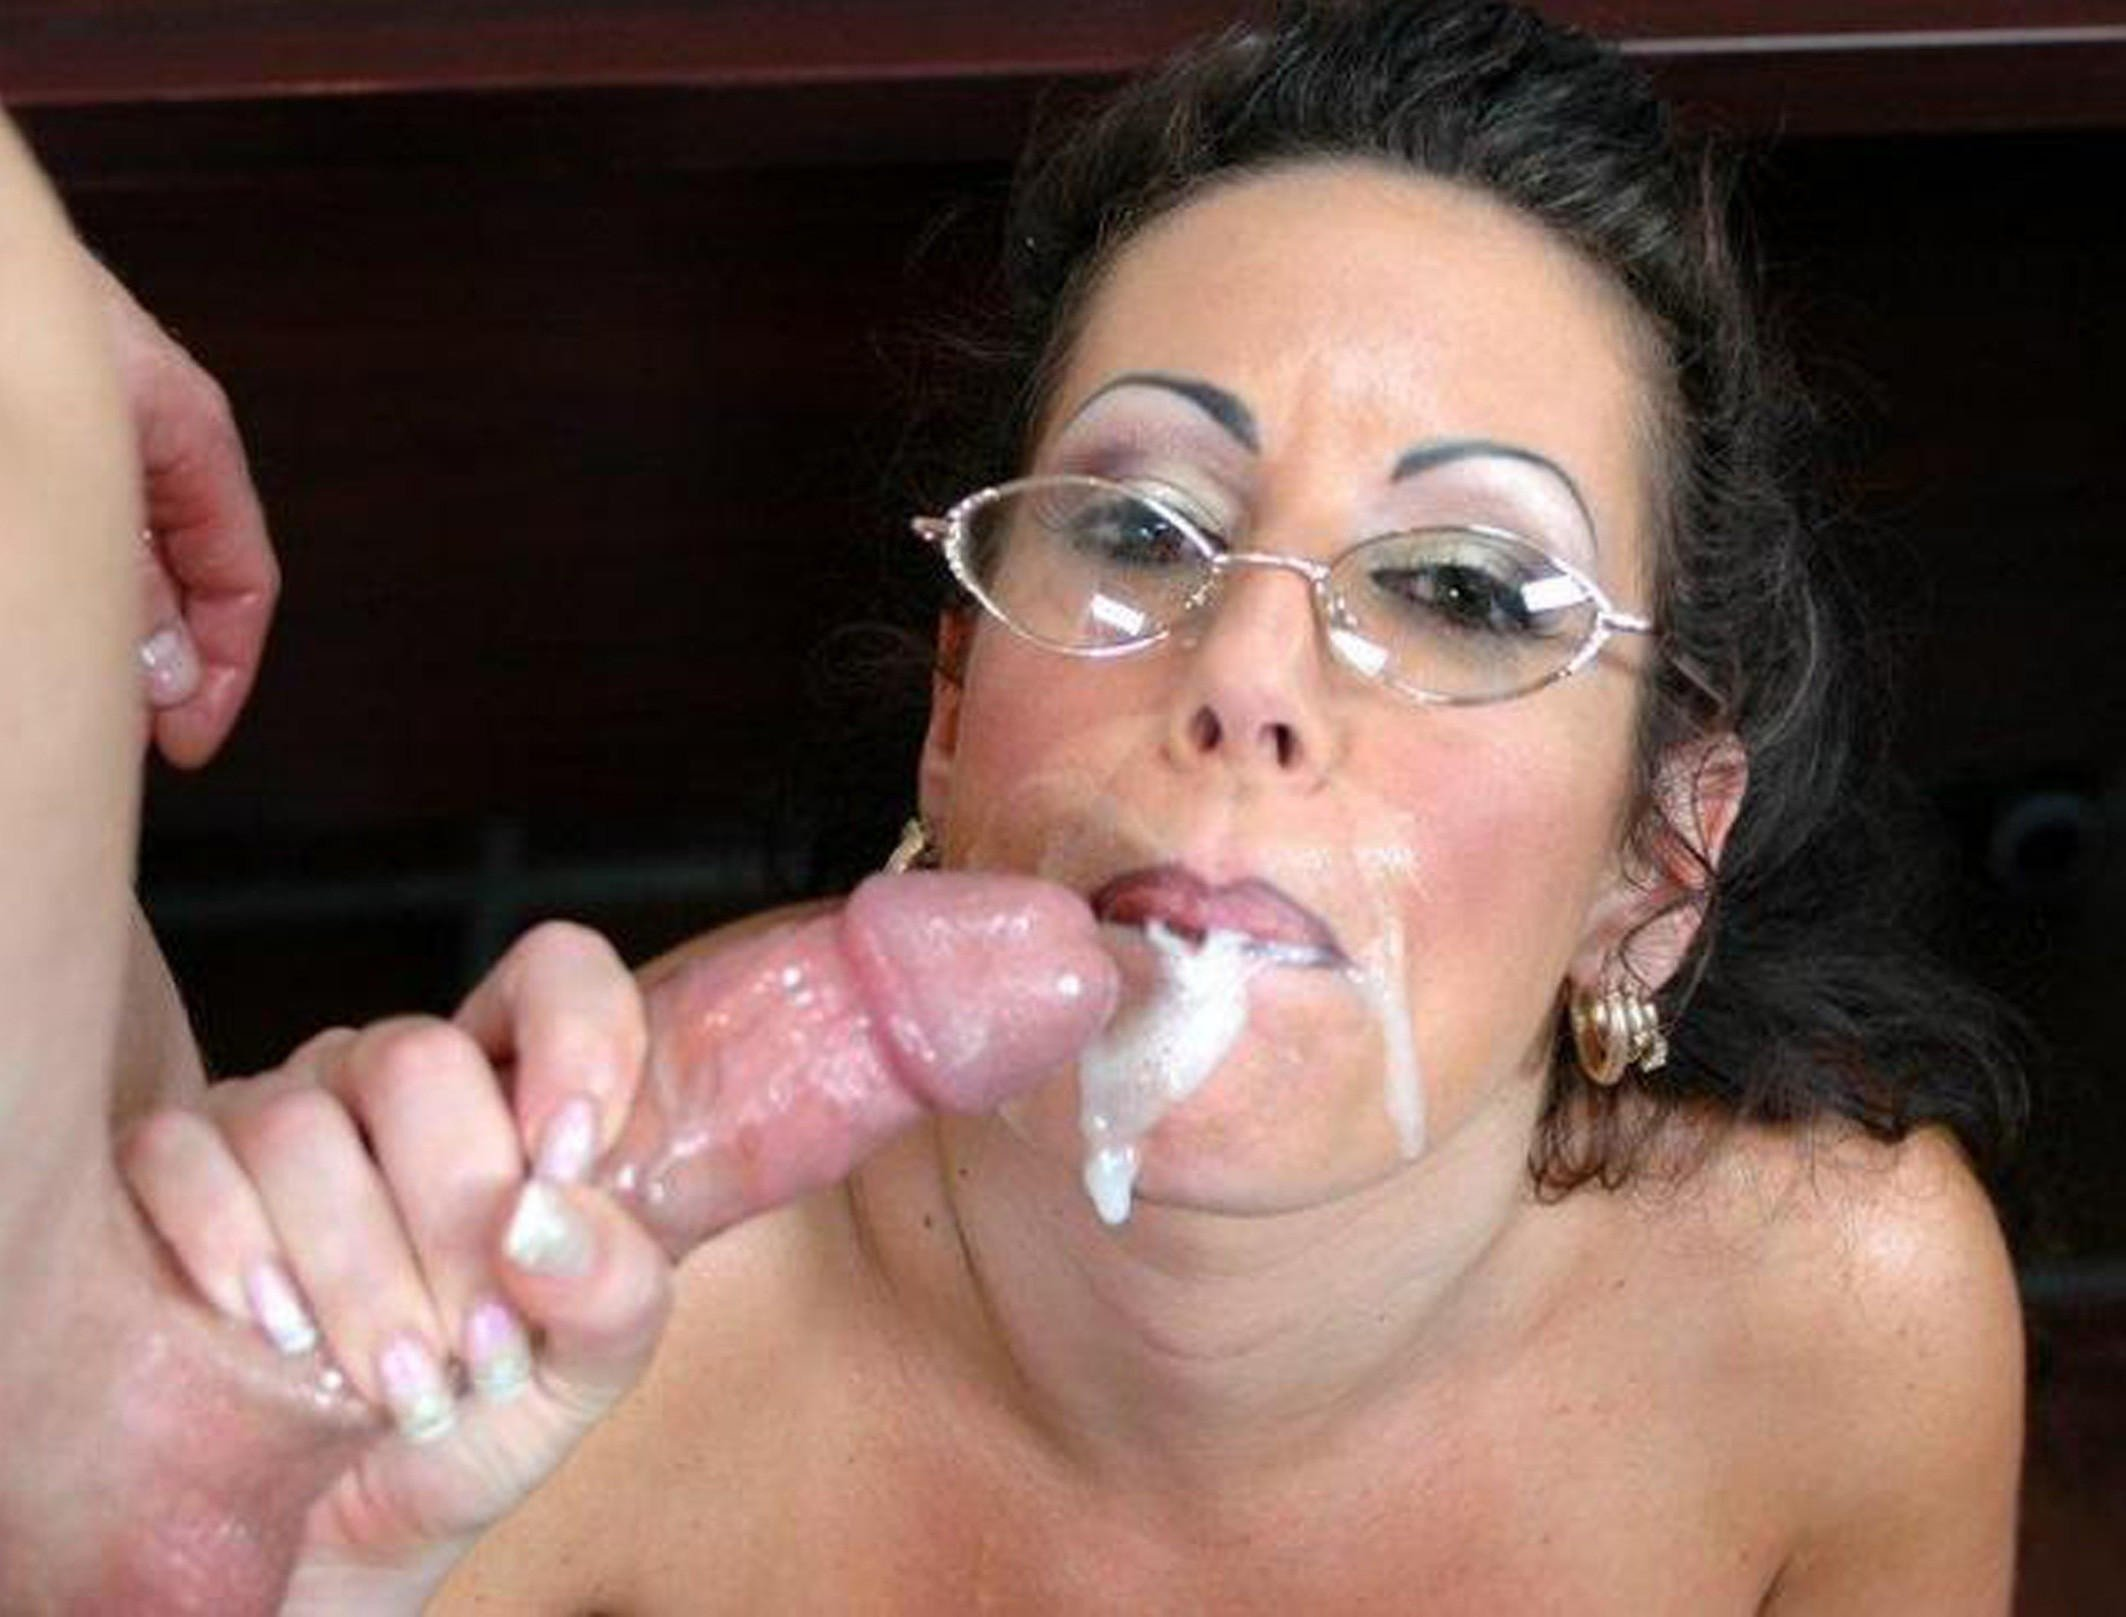 Filthy mature mom blows her sons cock till son cums in mom's insatiable mouth